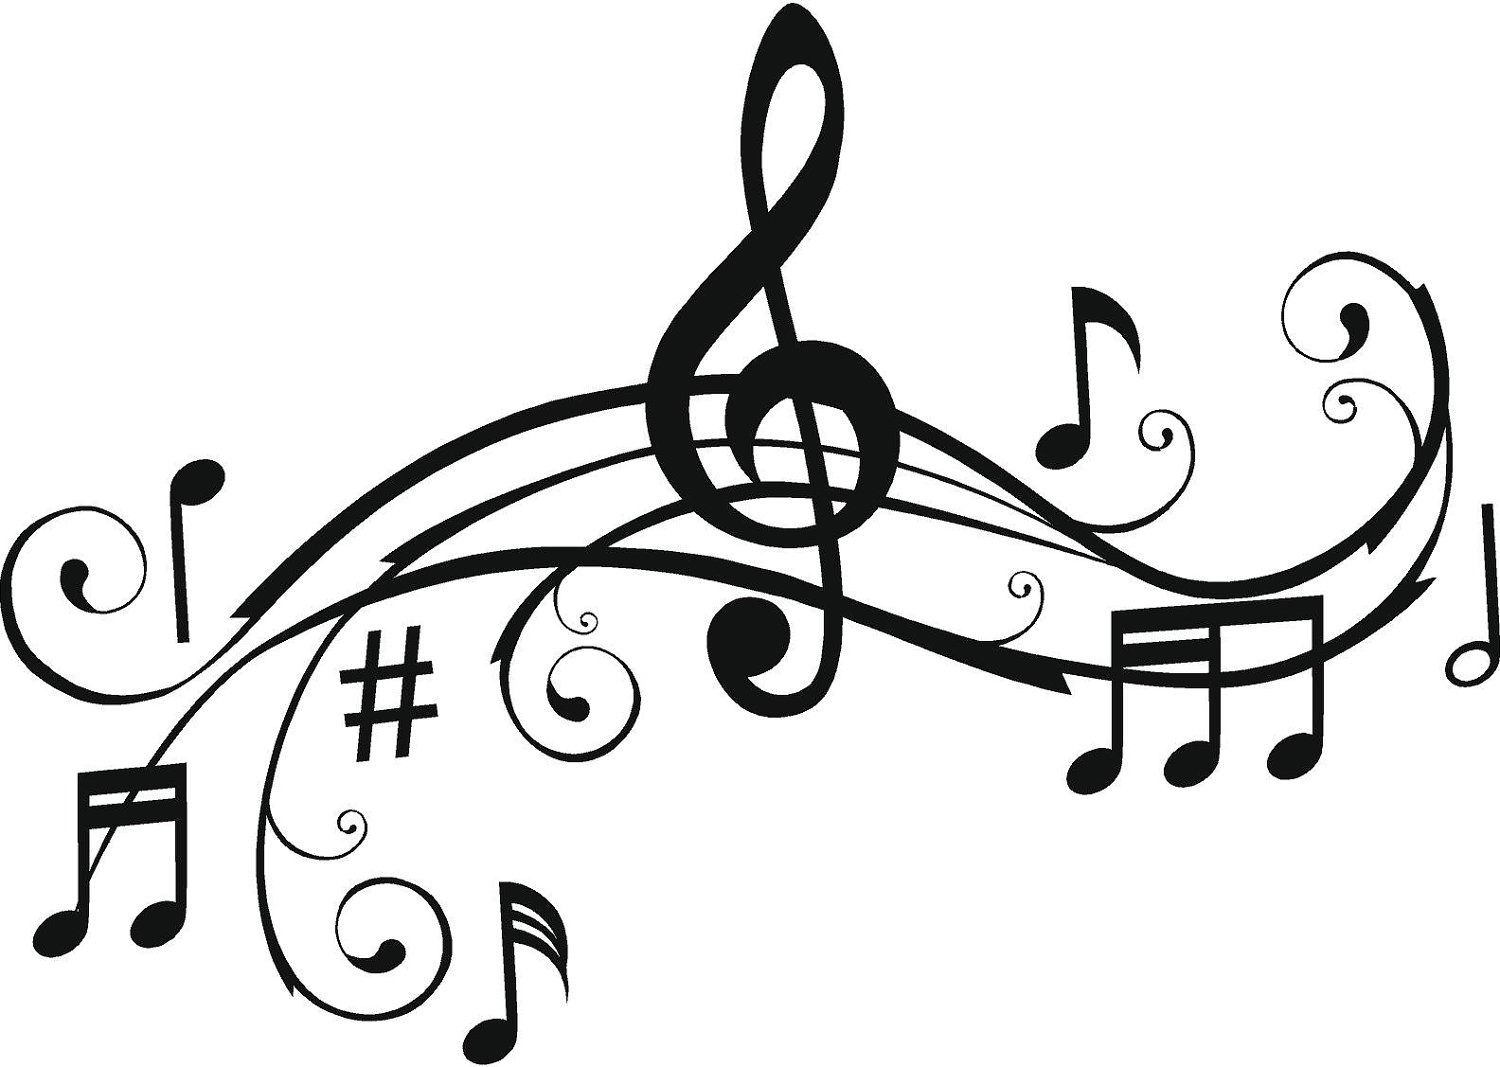 Printable Music Notes Music Notes Wall Art Word Wall Art Music Notes [ 1067 x 1500 Pixel ]